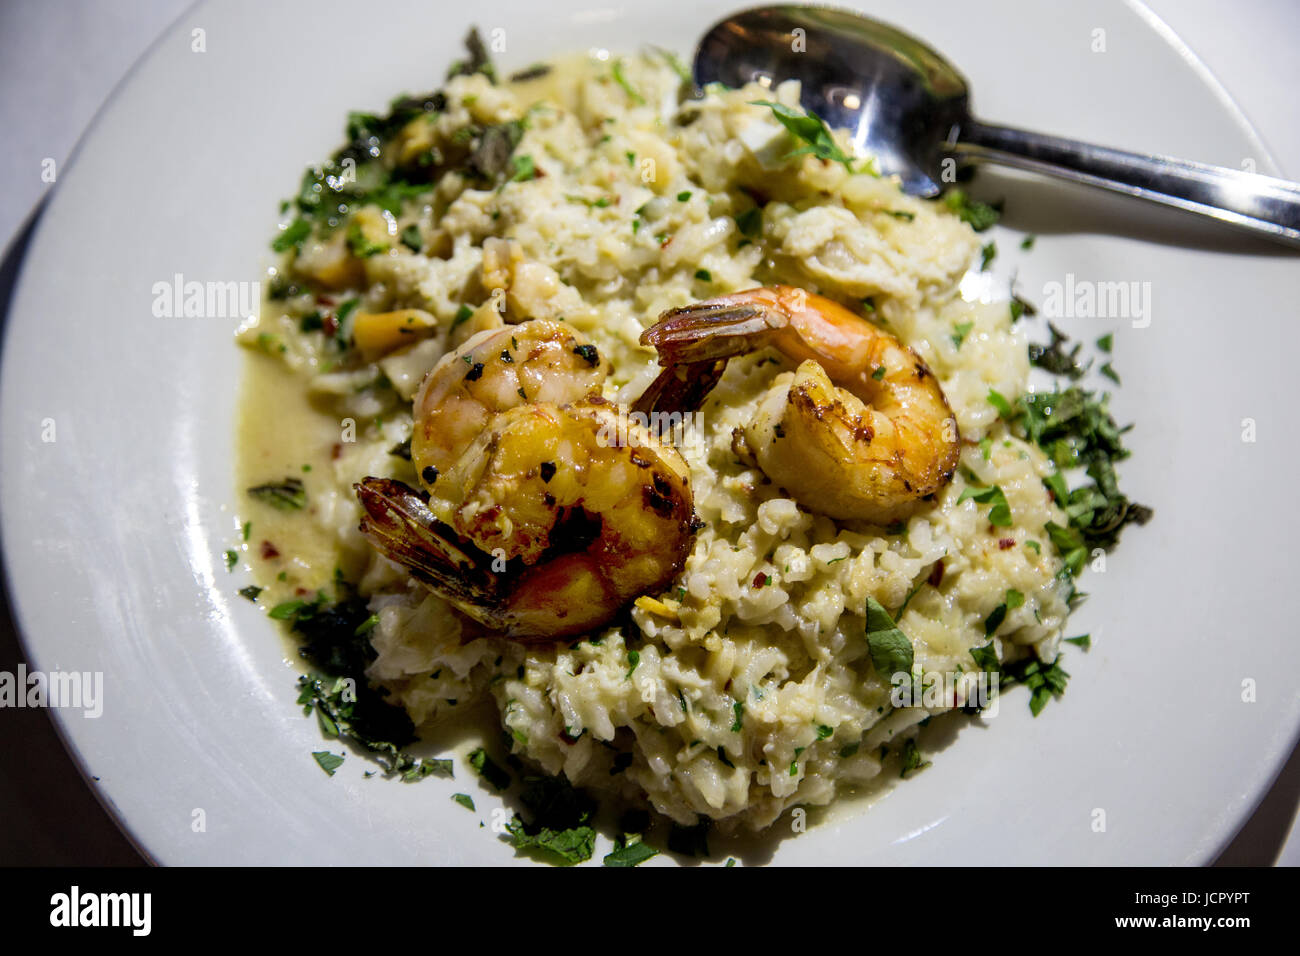 shrimp over rice with herbs - Stock Image